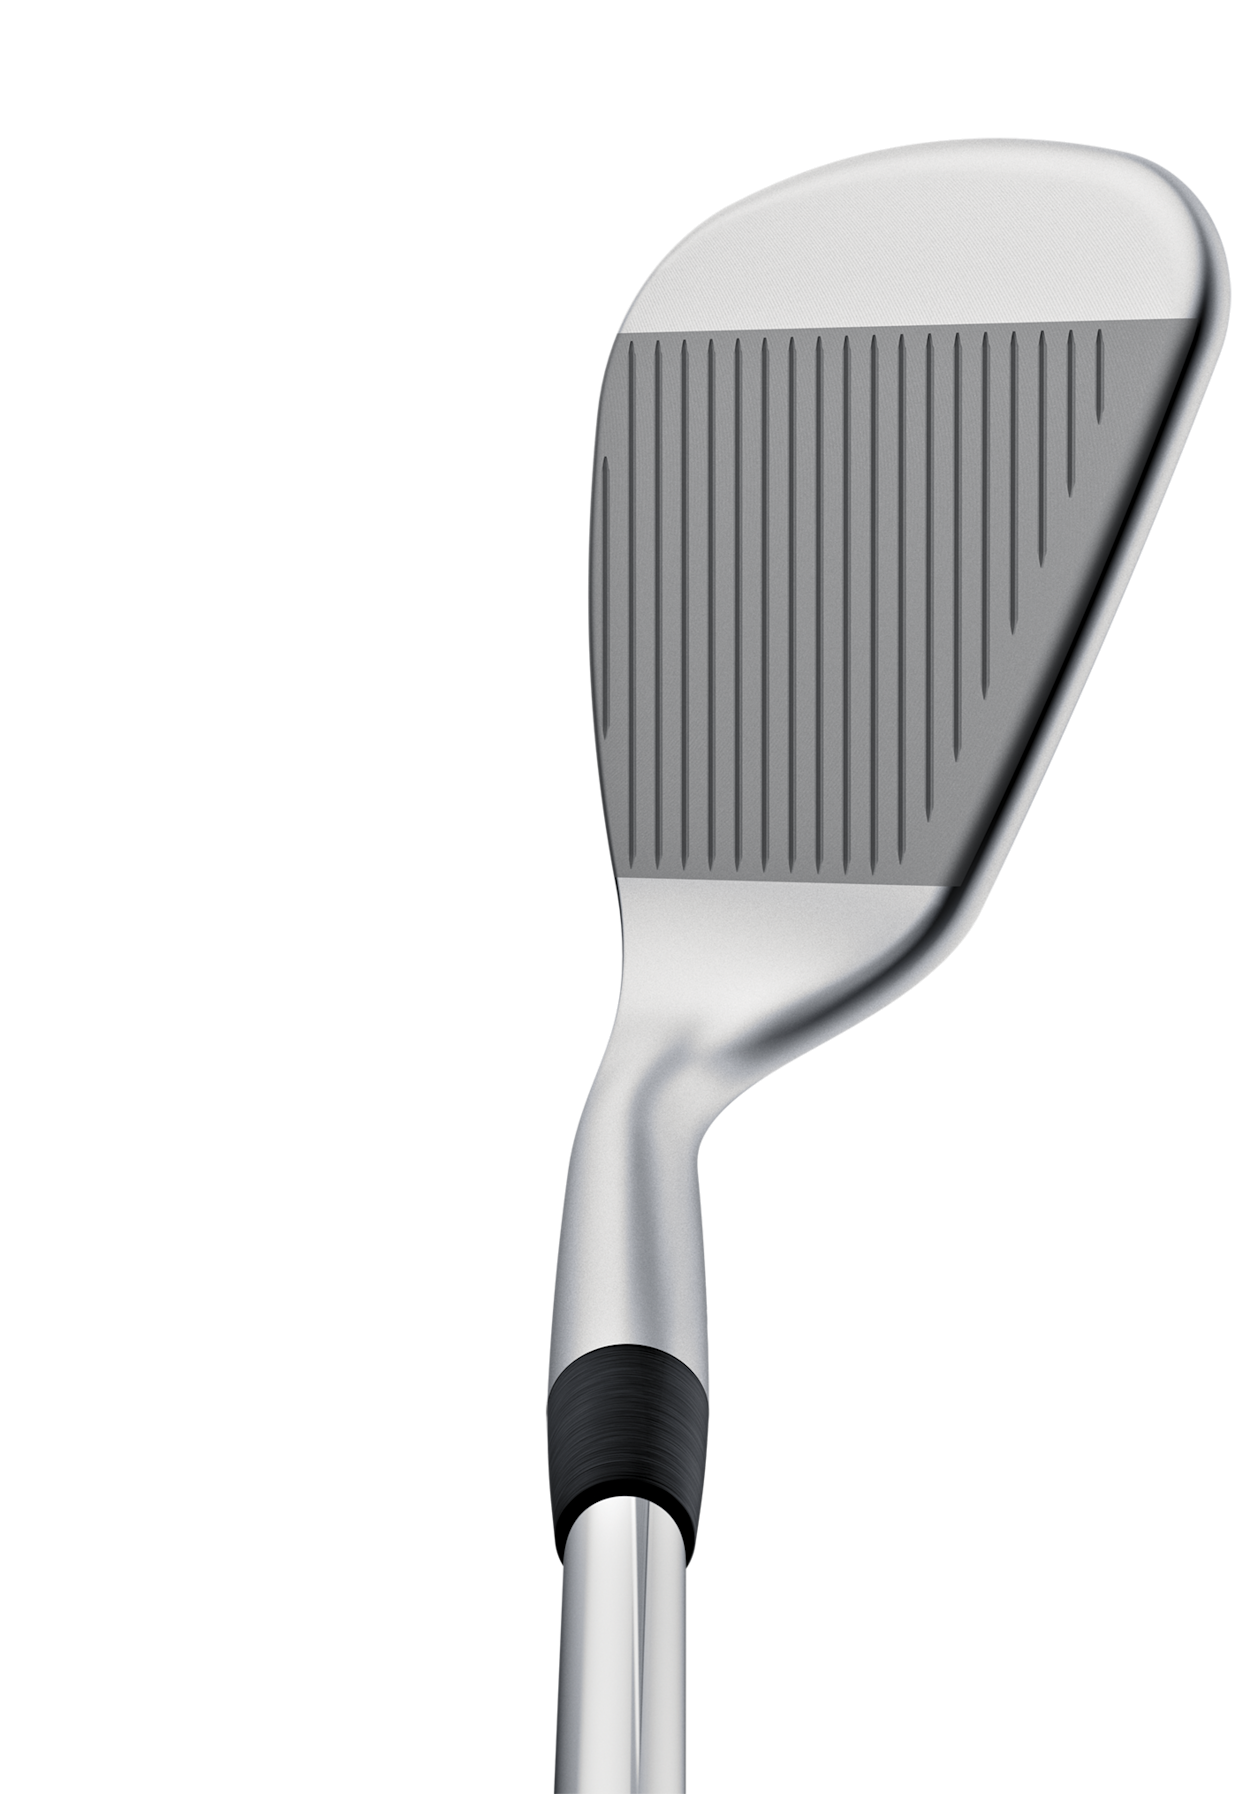 Its Classic 3.0 >> Ping S Glide 3 0 Wedge Makes Its Debut At The Rocket